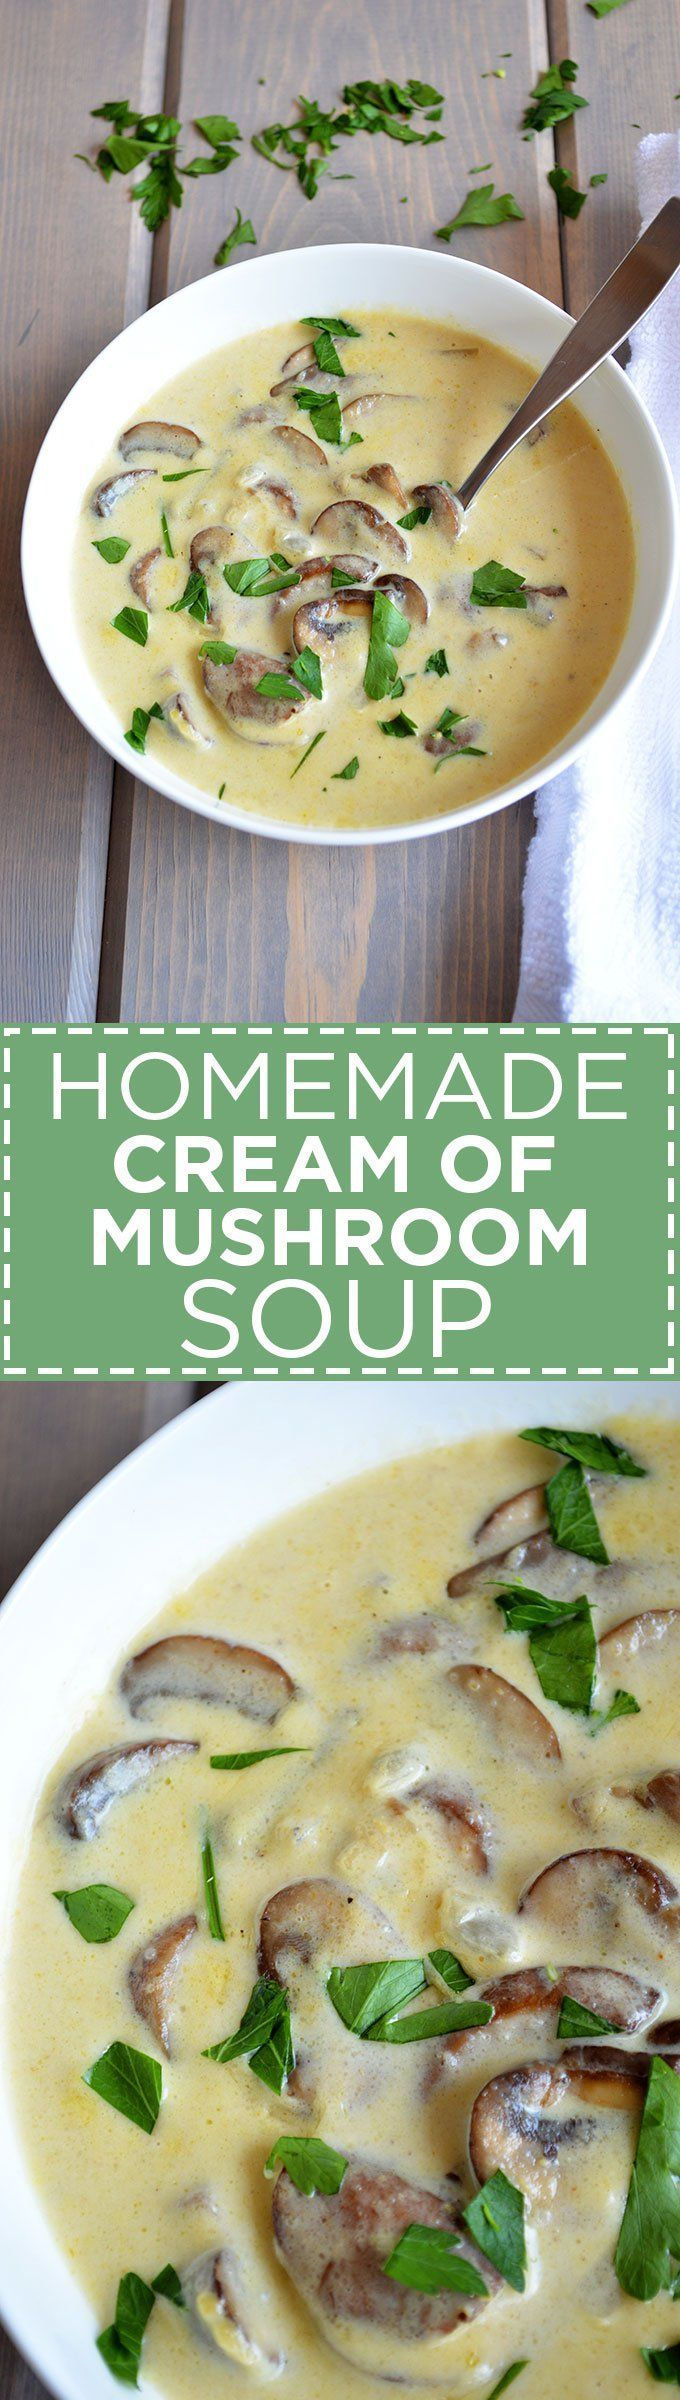 Homemade Cream of Mushroom Soup | Skip the can this #Thanksgiving and make your famous casseroles + stews with this simple, earthy, oh-so-creamy Homemade Cream of Mushroom Soup. #vegetarian #holidays